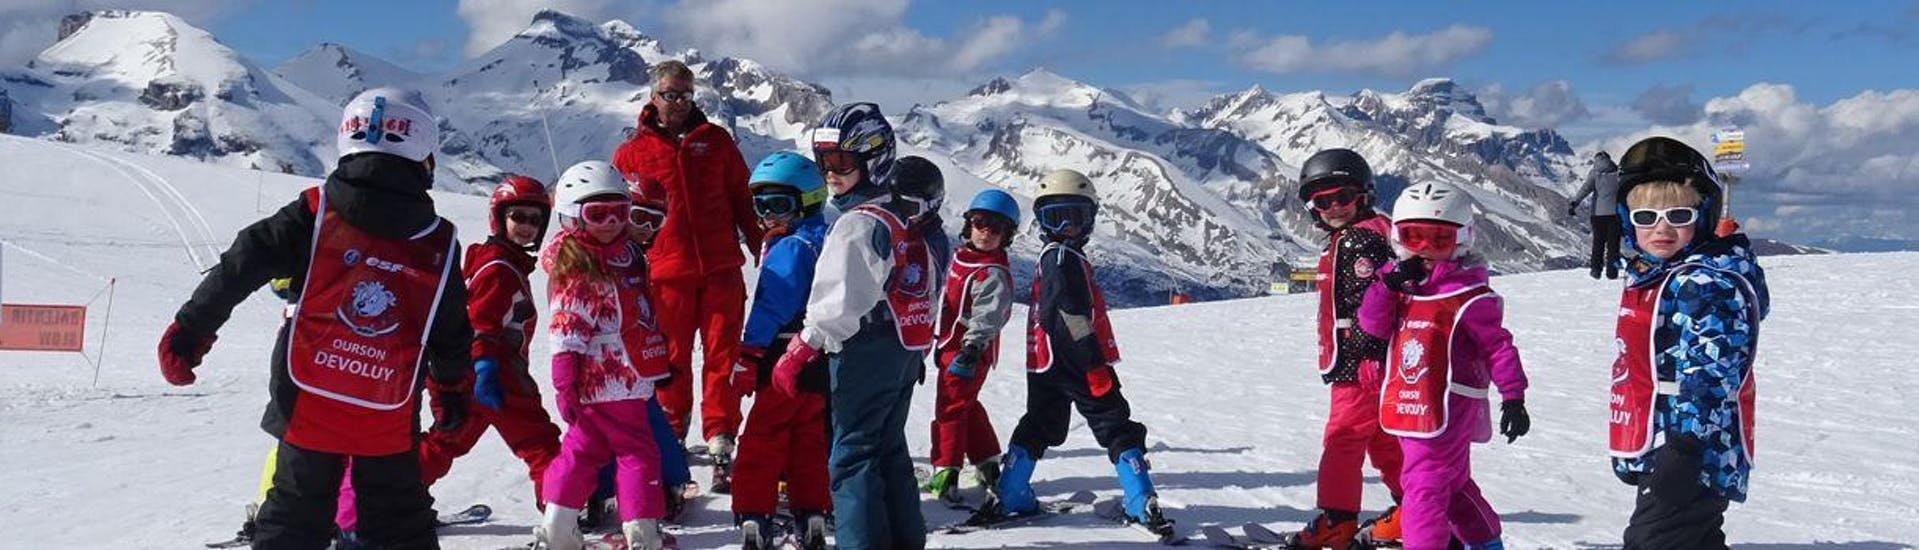 Kids are standing at the top of the slopes ready to start their Kids Ski Lessons (6-12 years) - February - Morning - Beginner with the ski school ESF du Dévoluy.